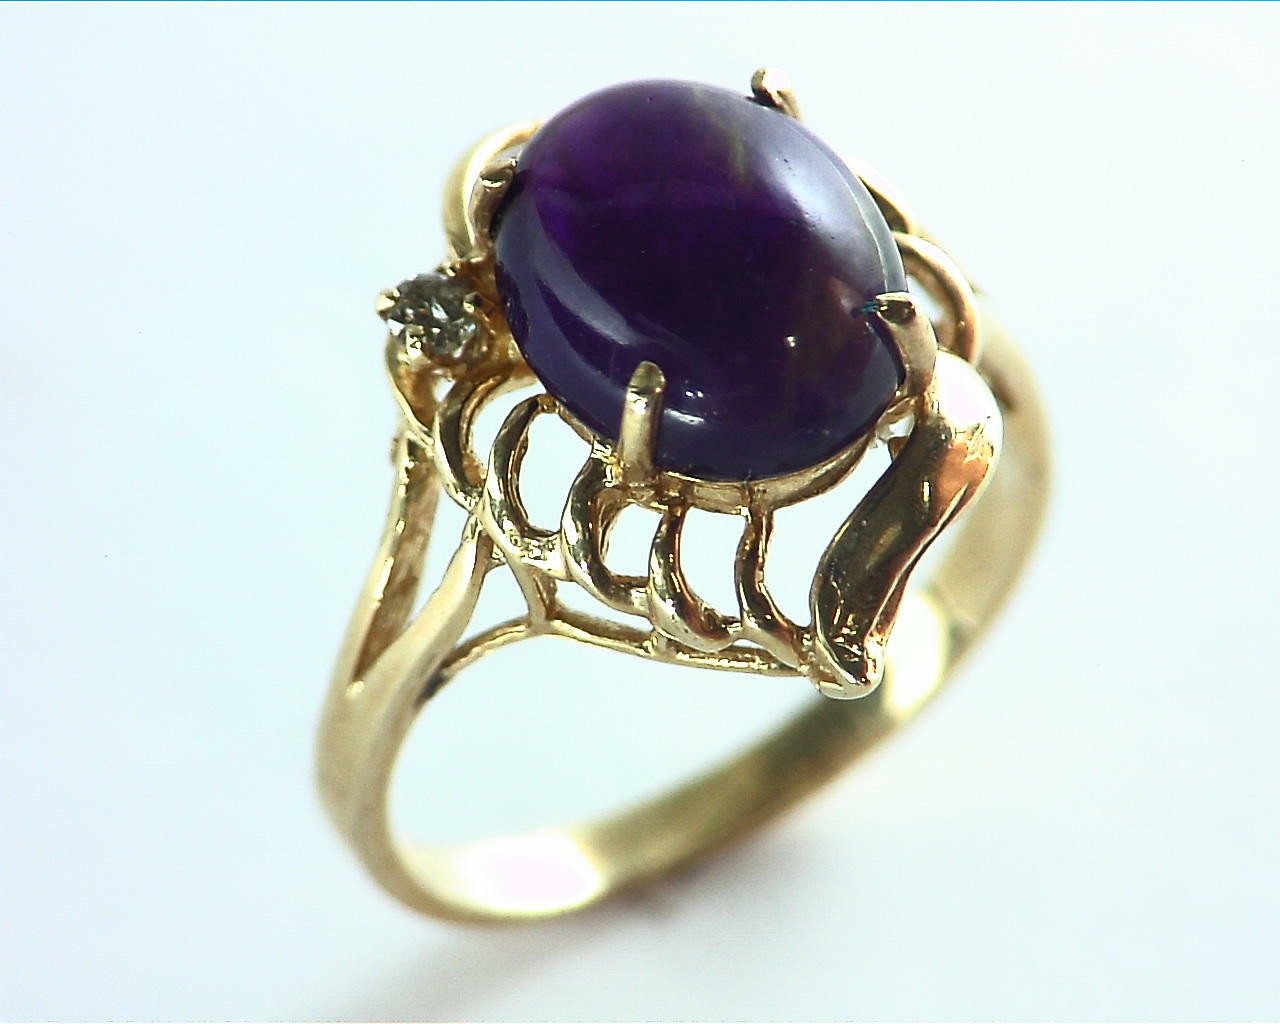 Amethyst set in a Beautiful 14 kt Yellow Gold Engagement Ring Design